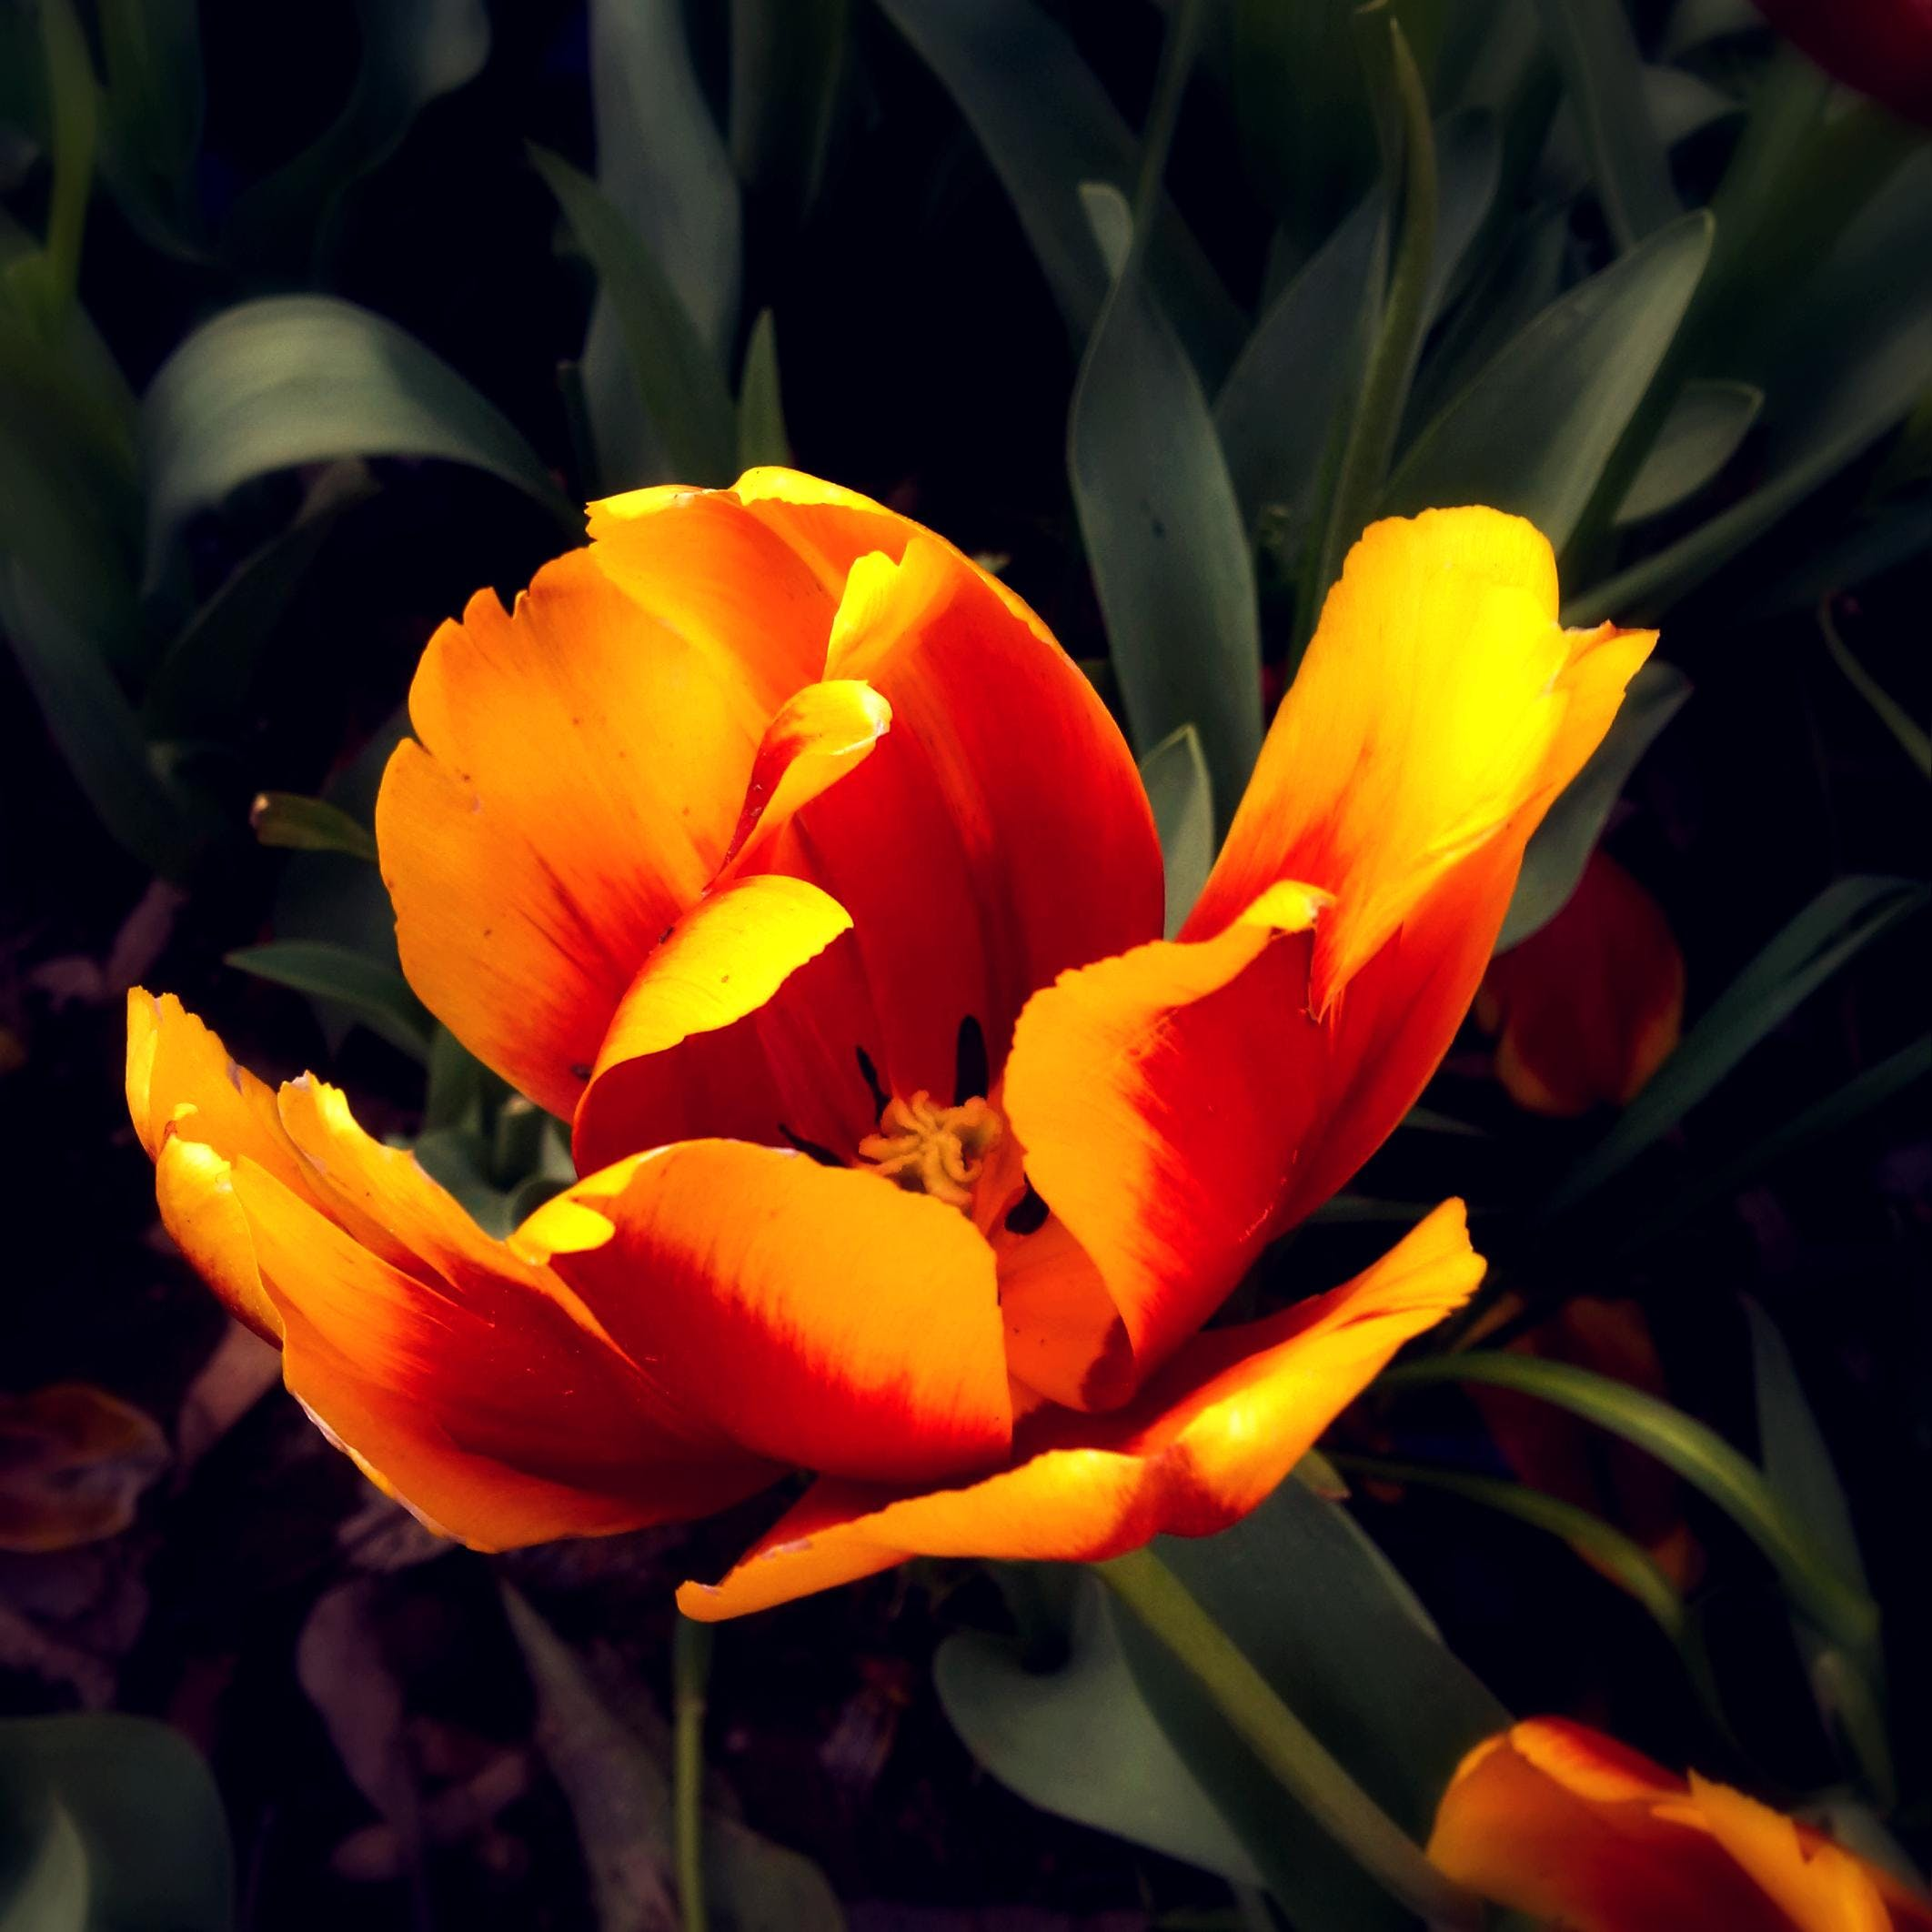 Free stock photo of beautiful flowers, flower, orange flower, tulip